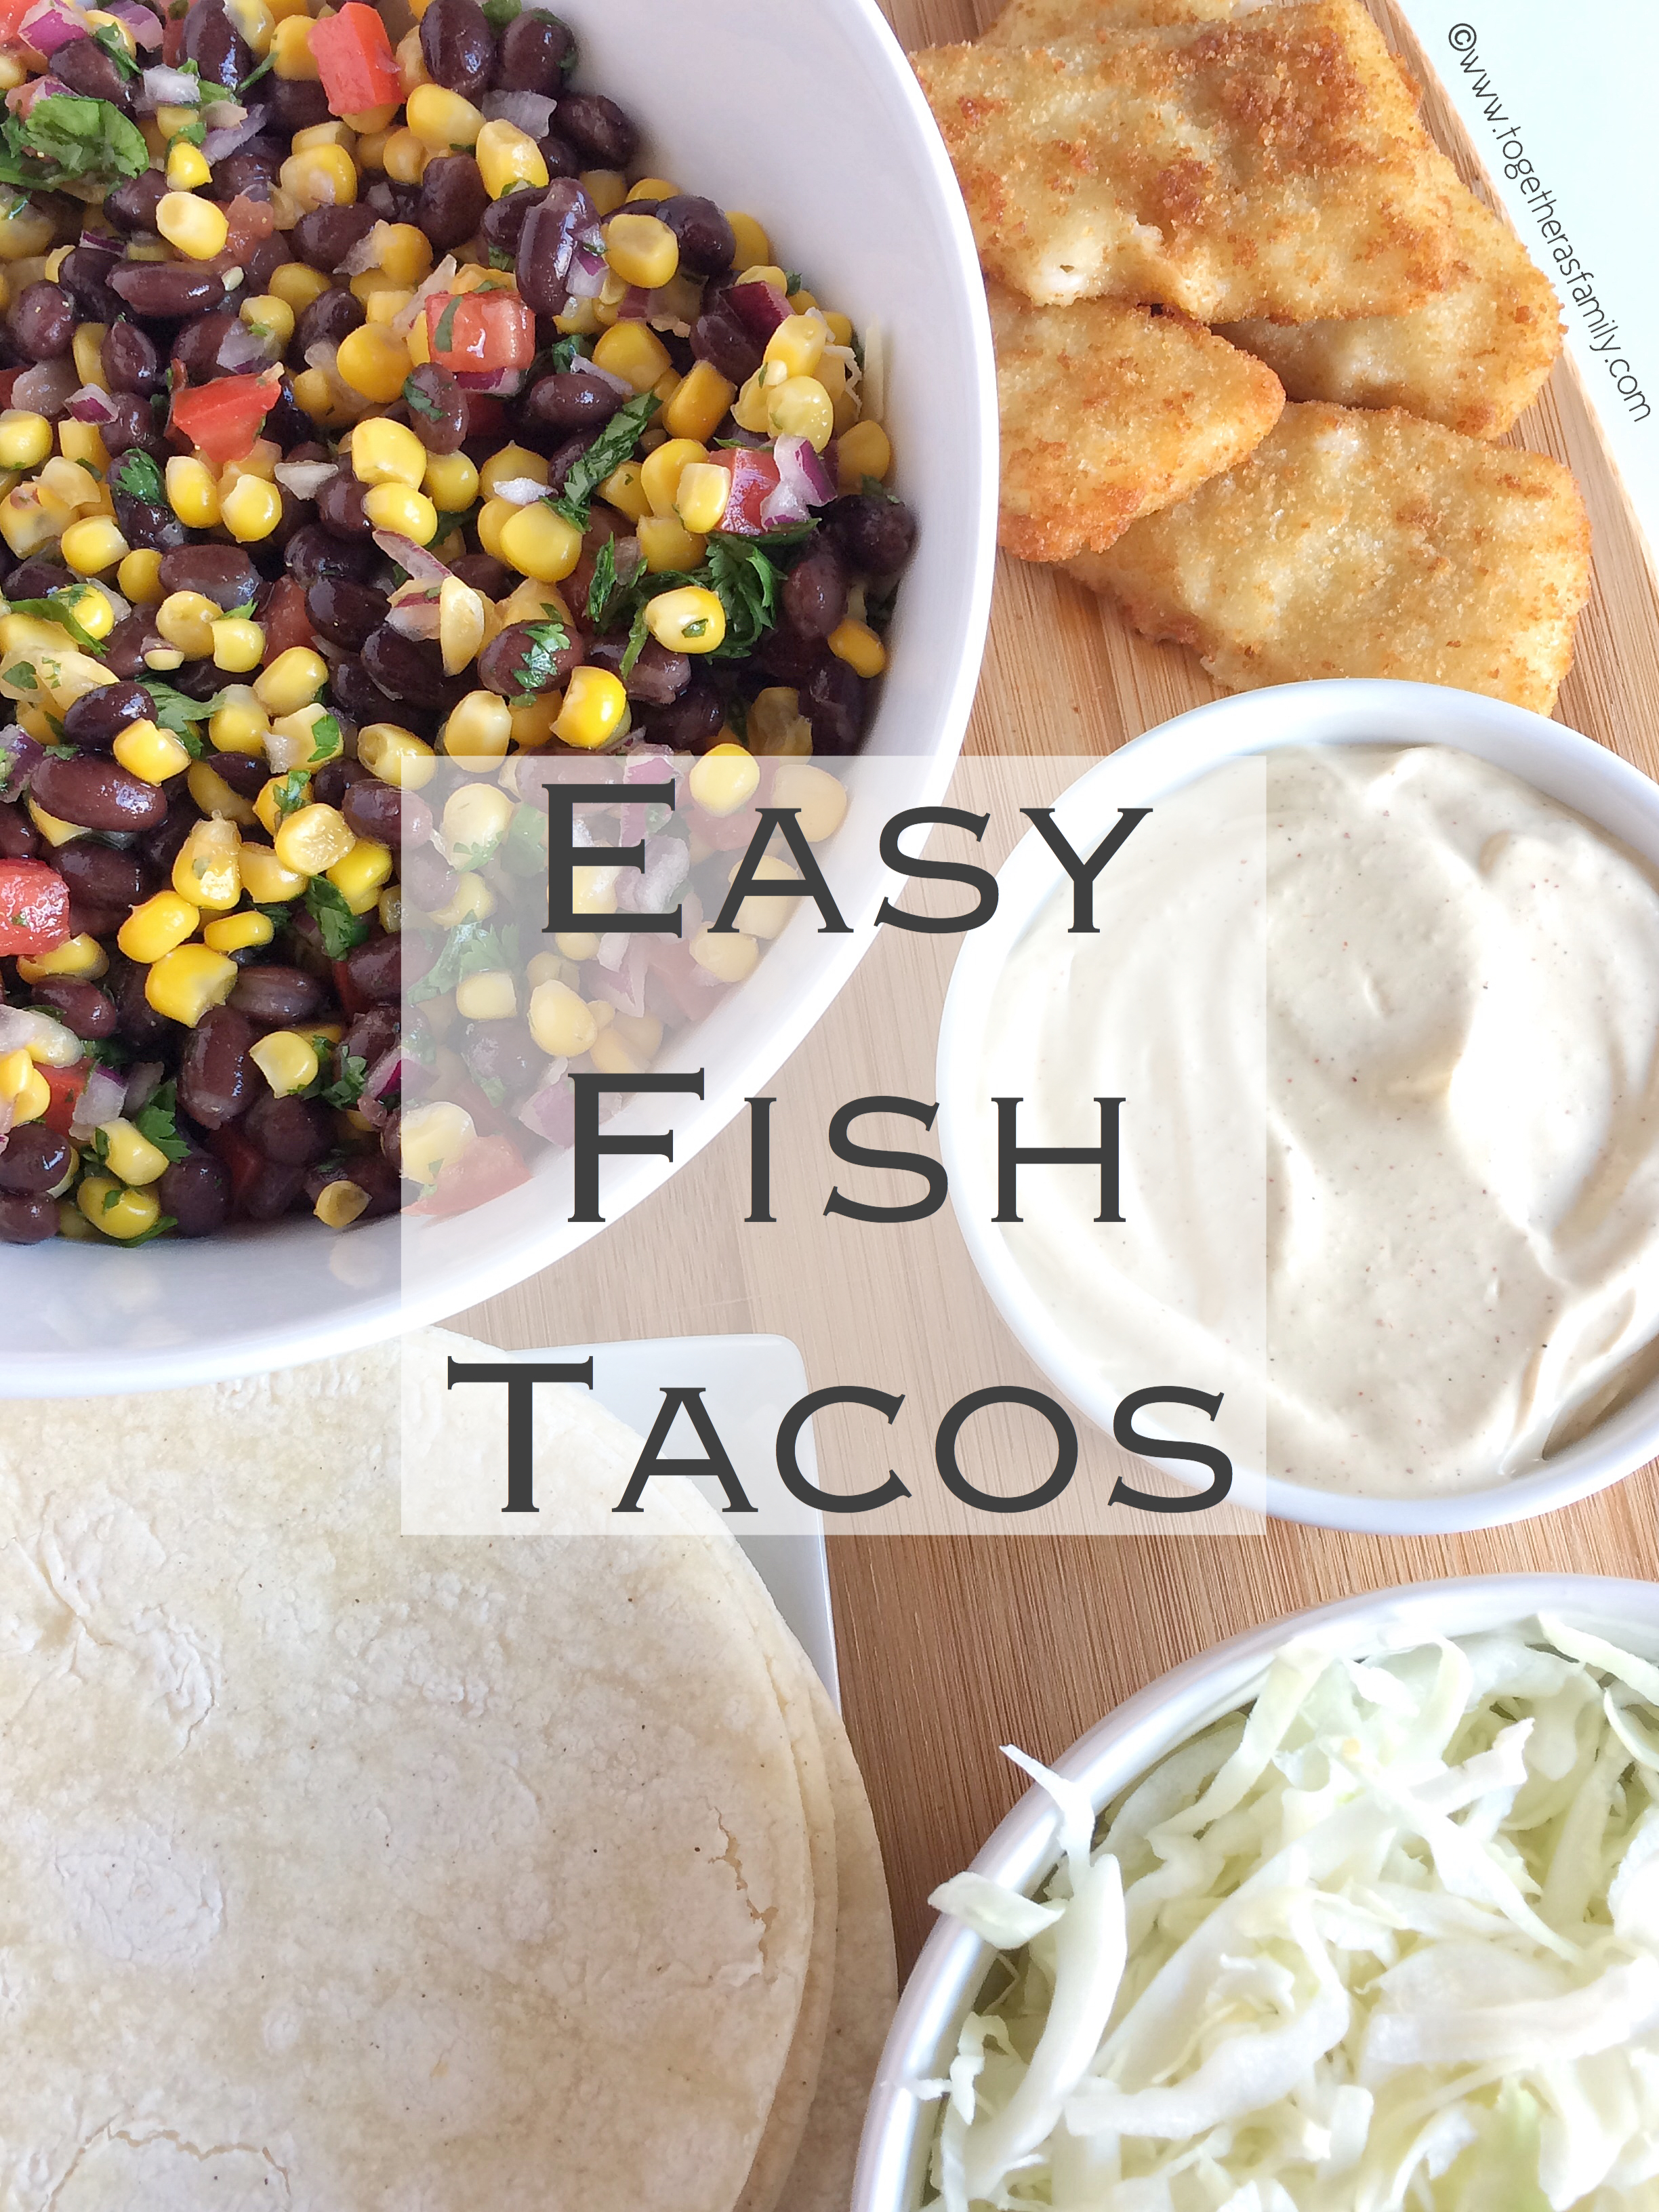 Fish Tacos Using Frozen Fish Sticks | All About Fish